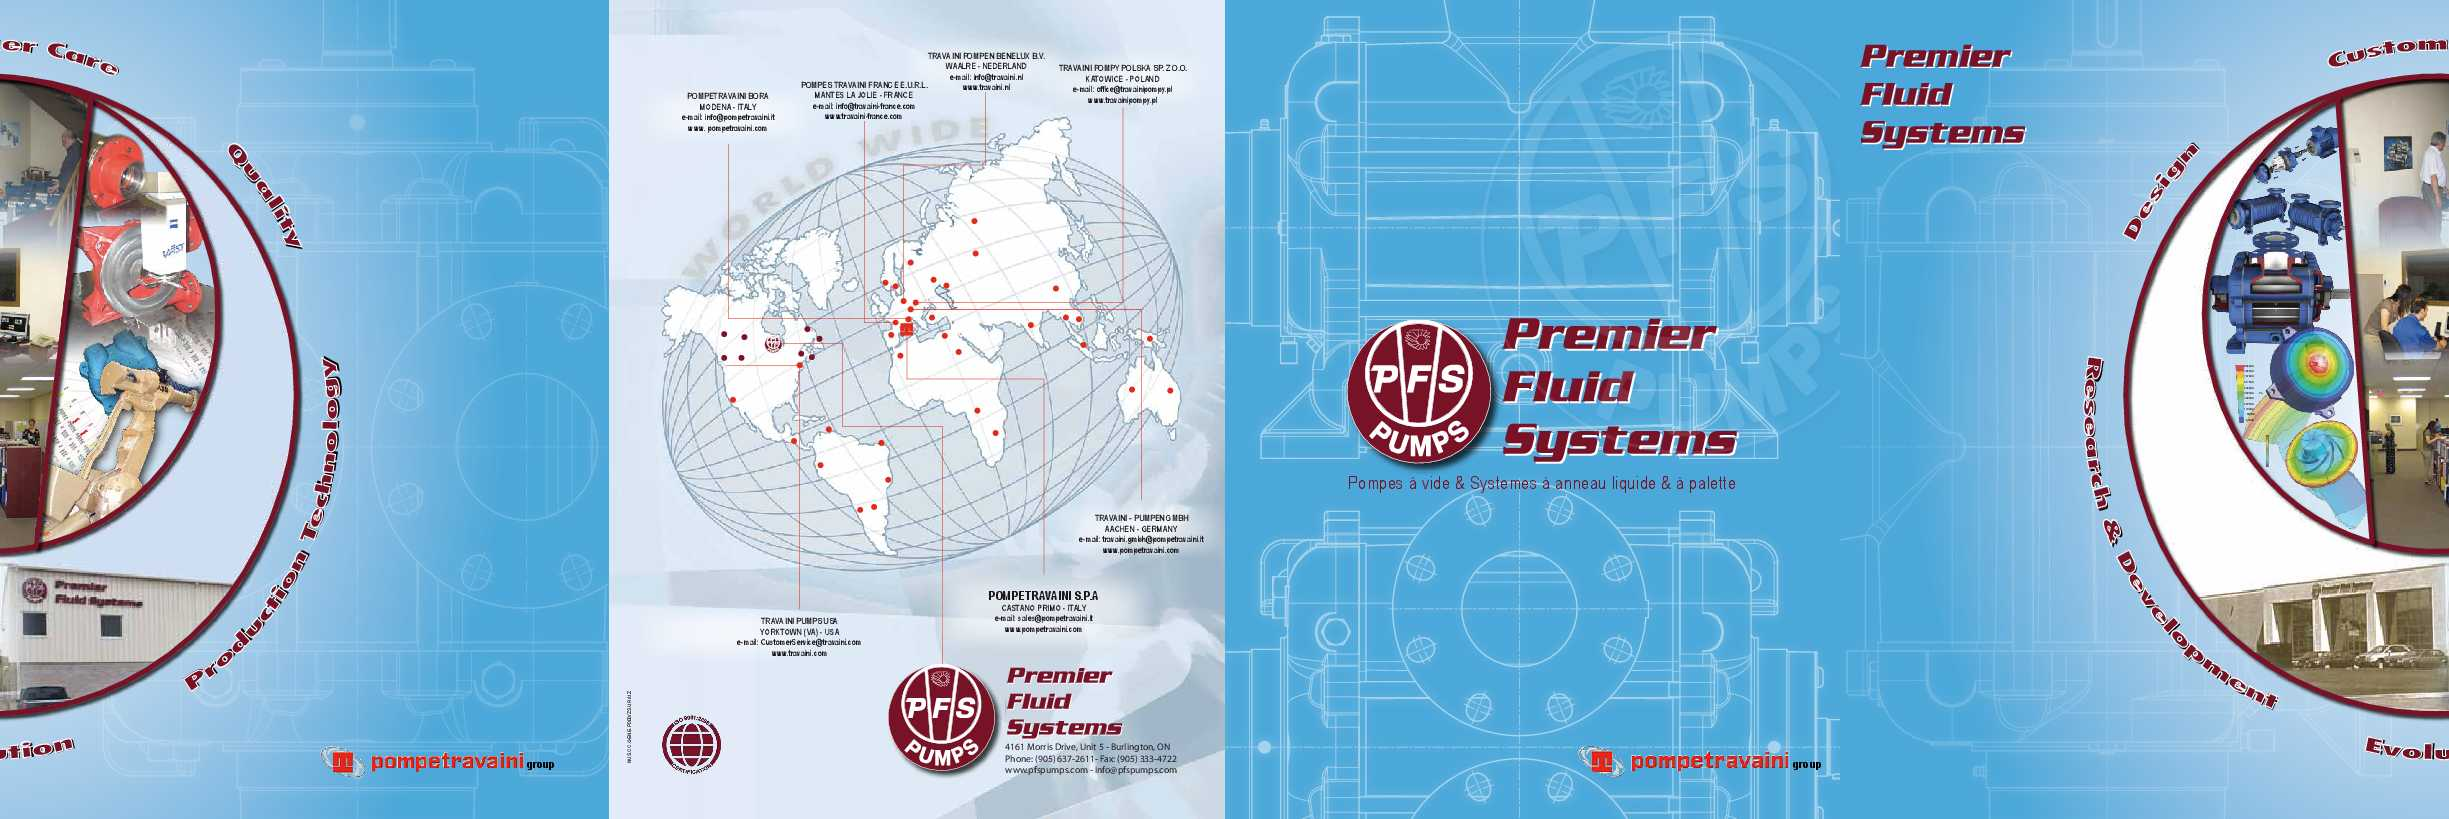 Premier Fluid System Catalogue